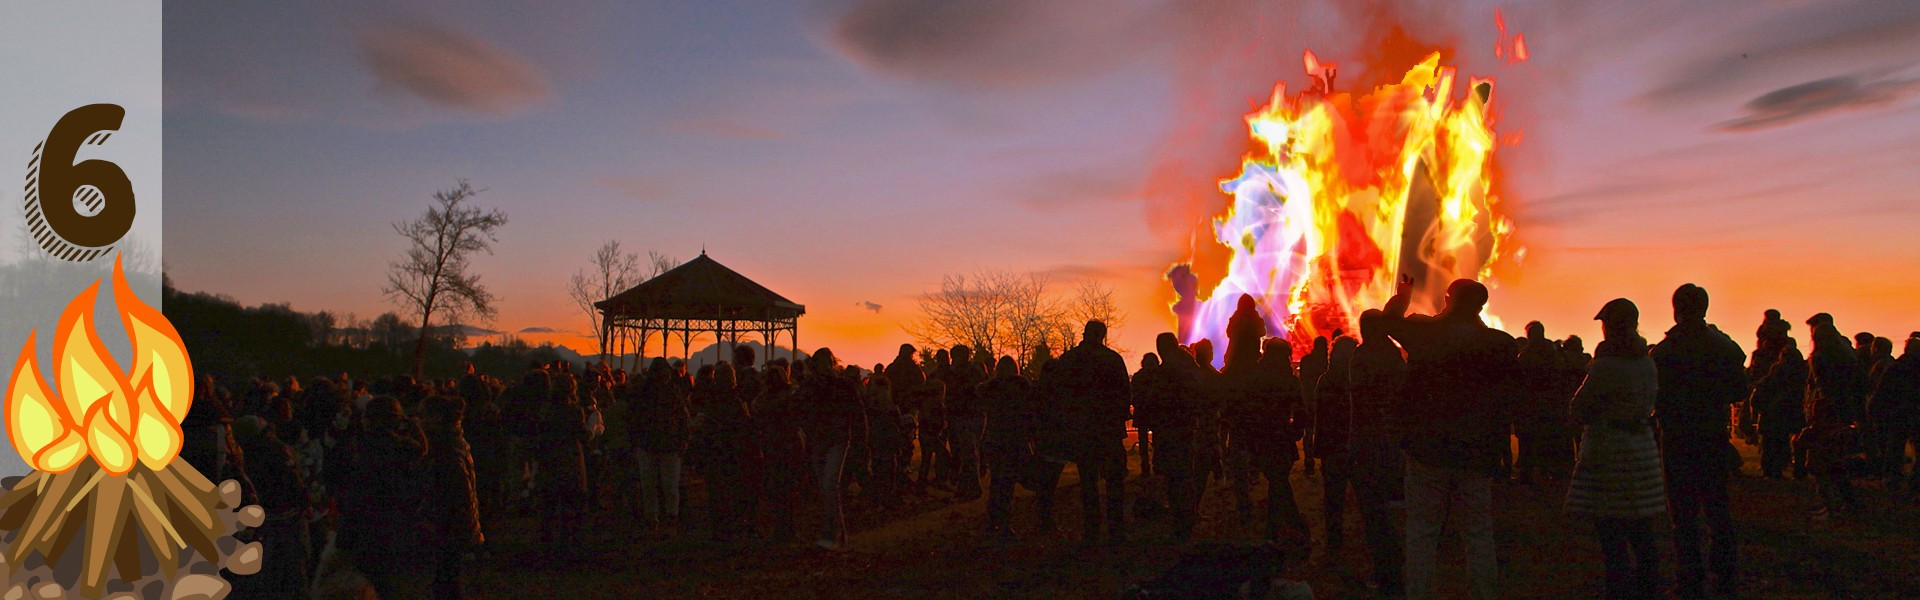 huge crowd surrounded by bonfire with rainbow colors at sunset